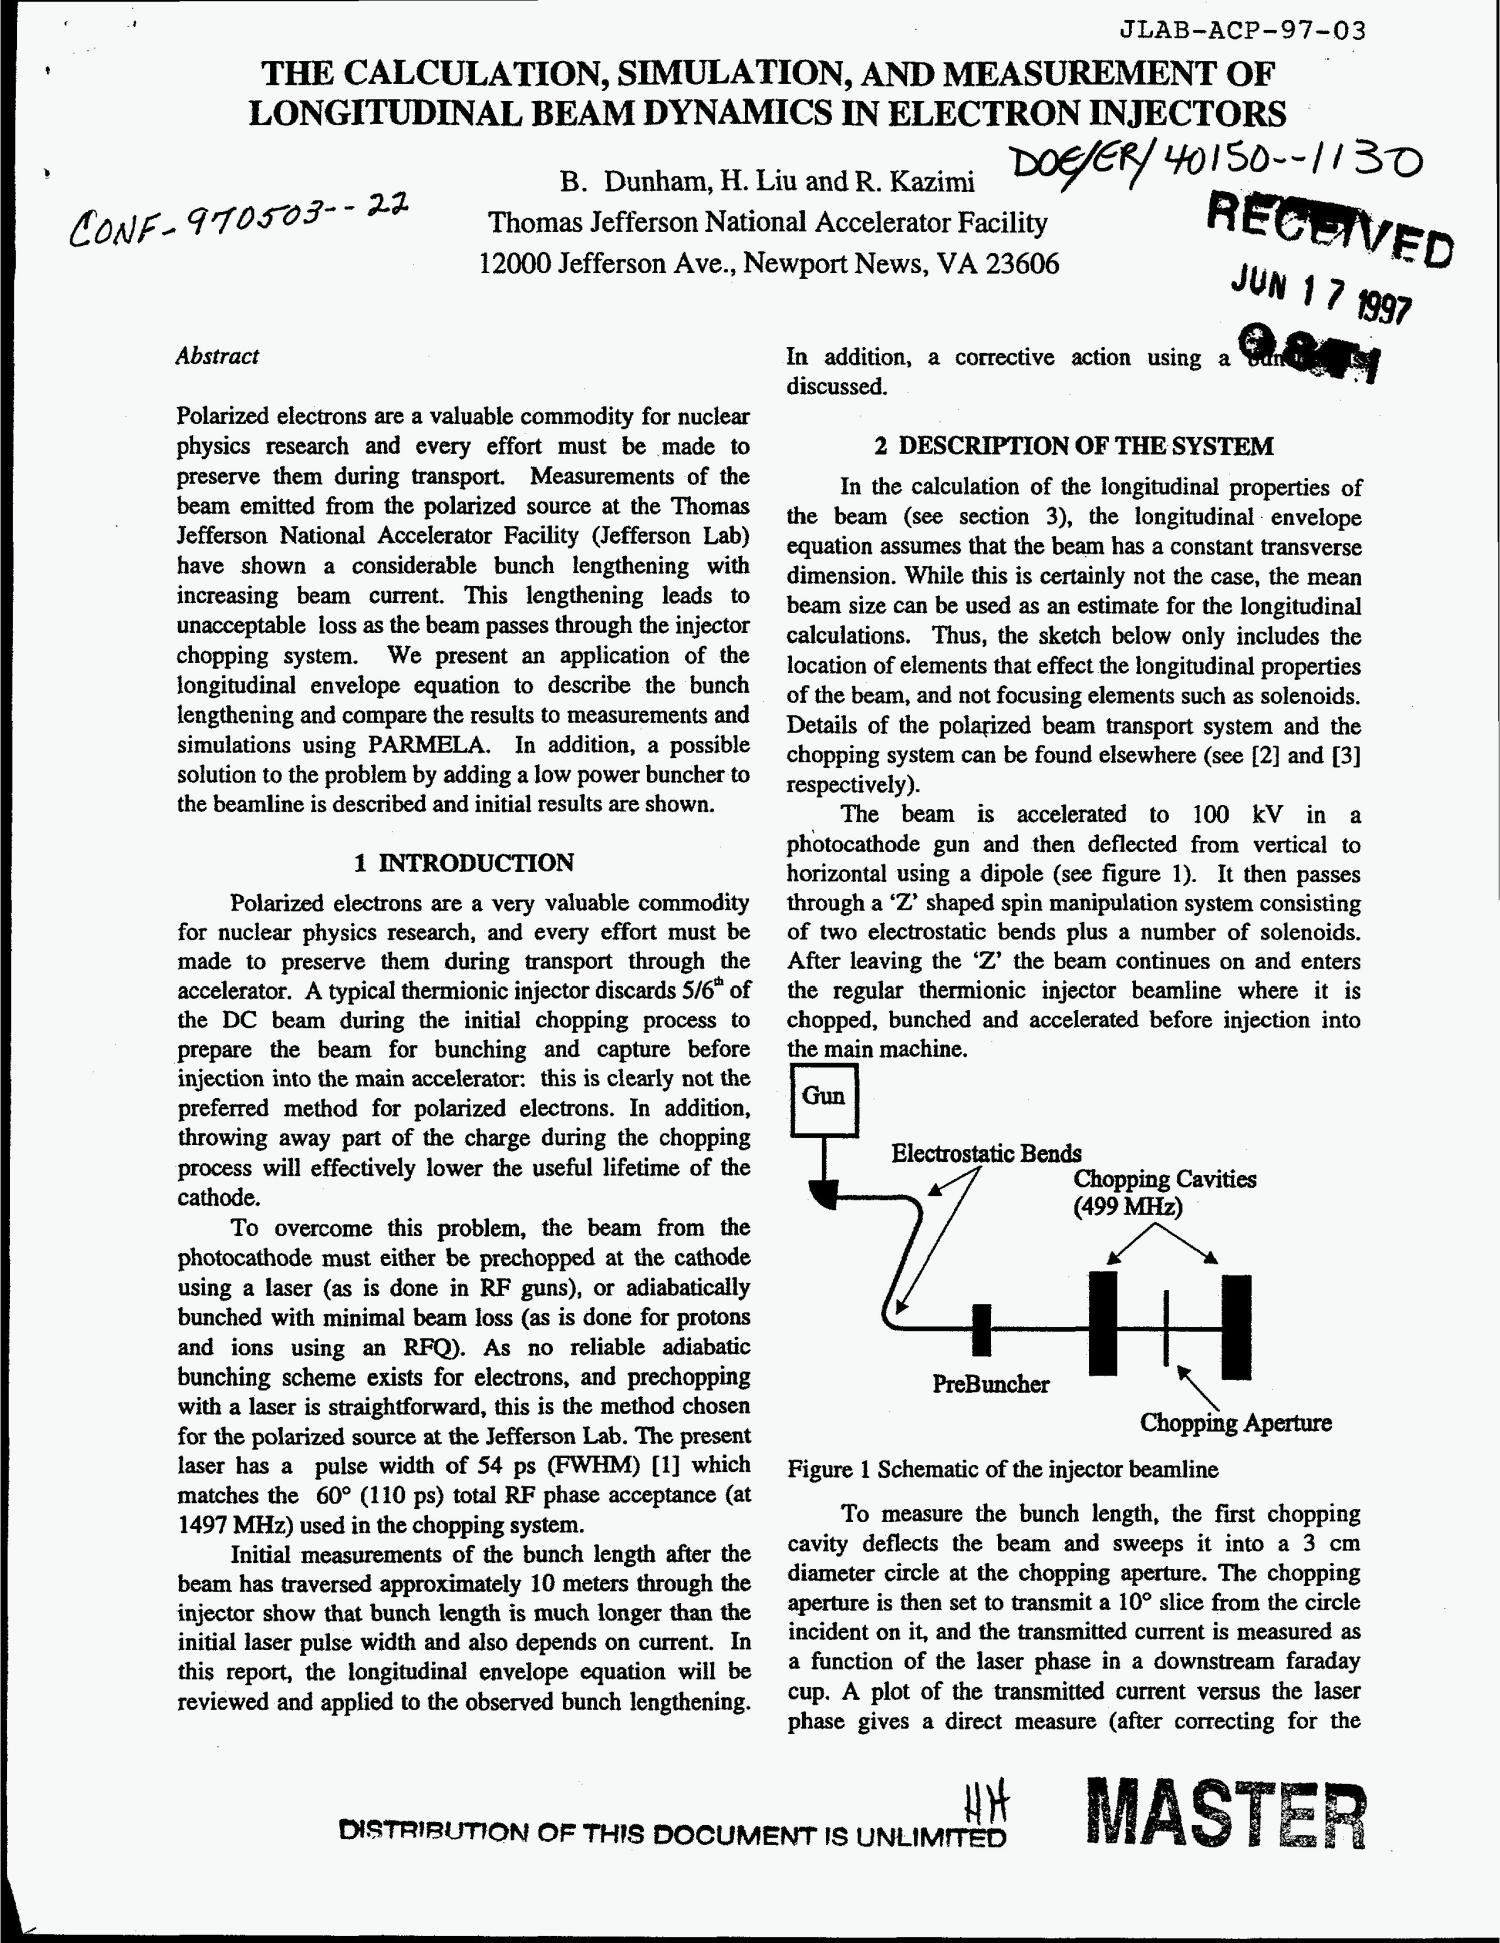 the calculation simulation and measurement of longitudinal beam Beam H D 2 the calculation simulation and measurement of longitudinal beam dynamics in electron injectors digital library